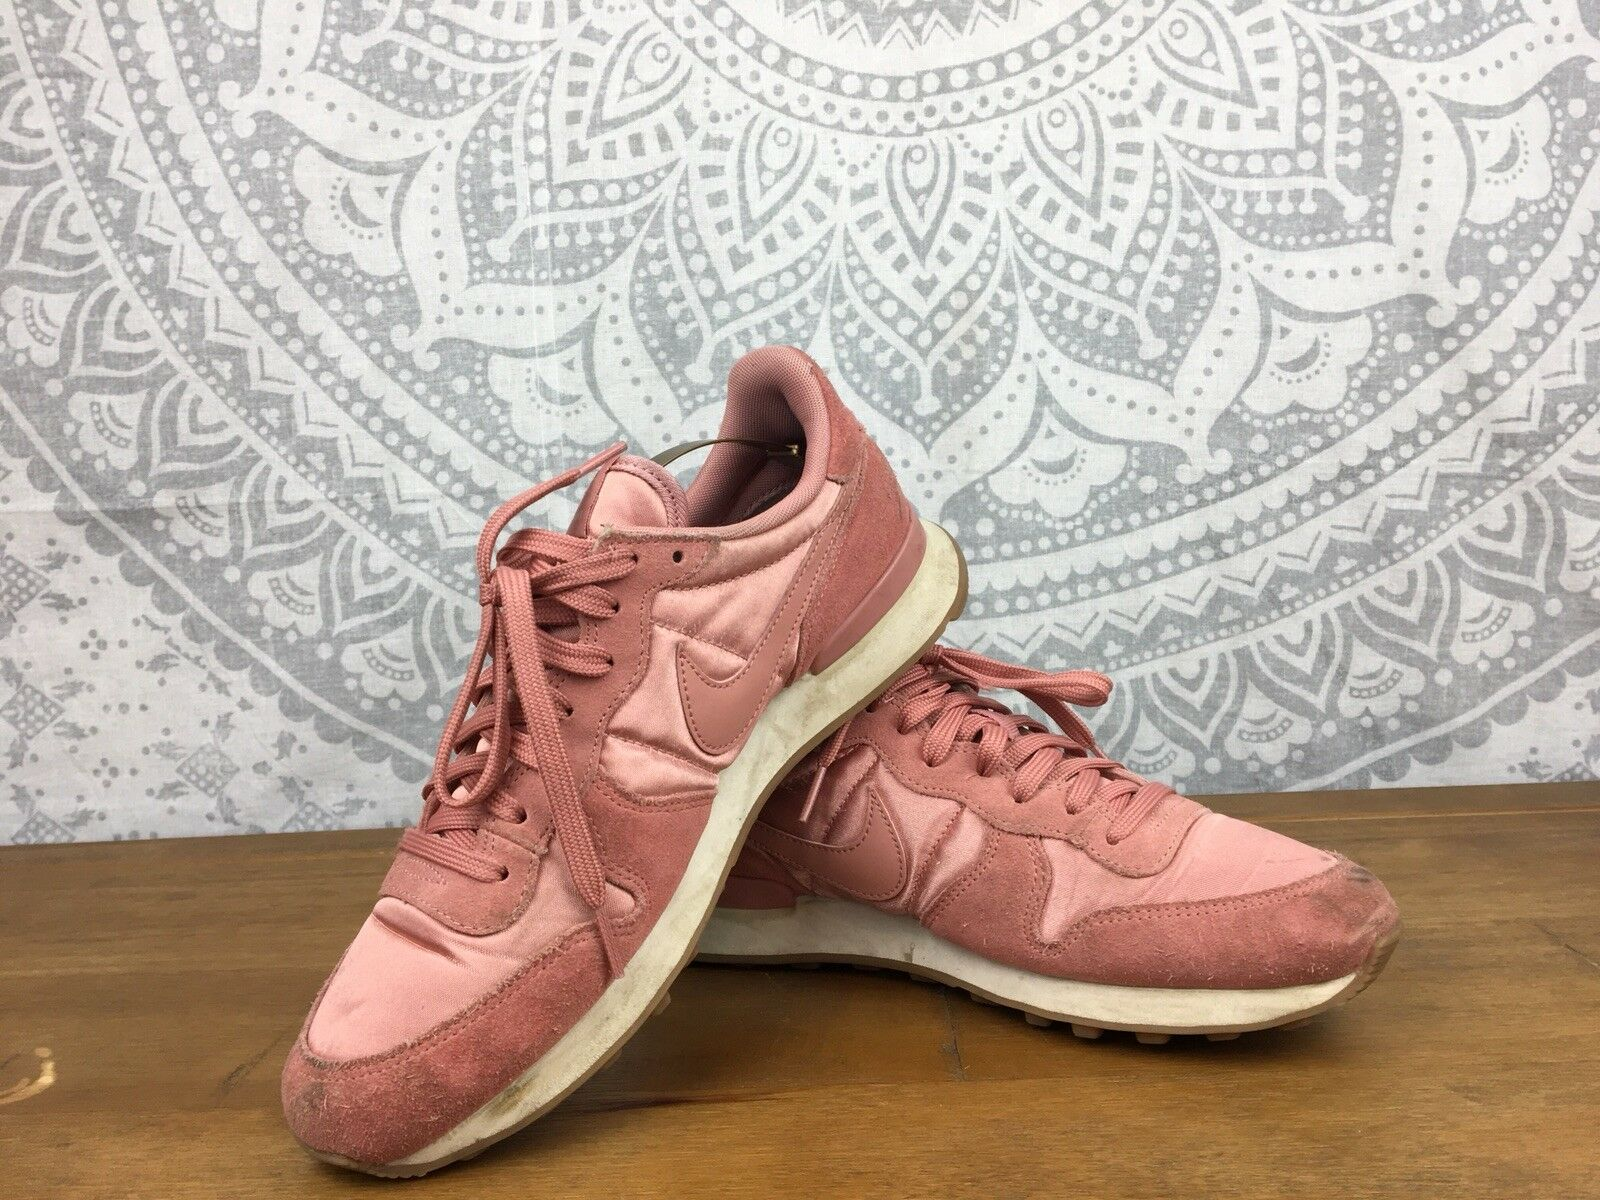 Women's NIKE INTERNATIONALIST Trainers Shoes Pink, UK Comfortable best-selling model of the brand